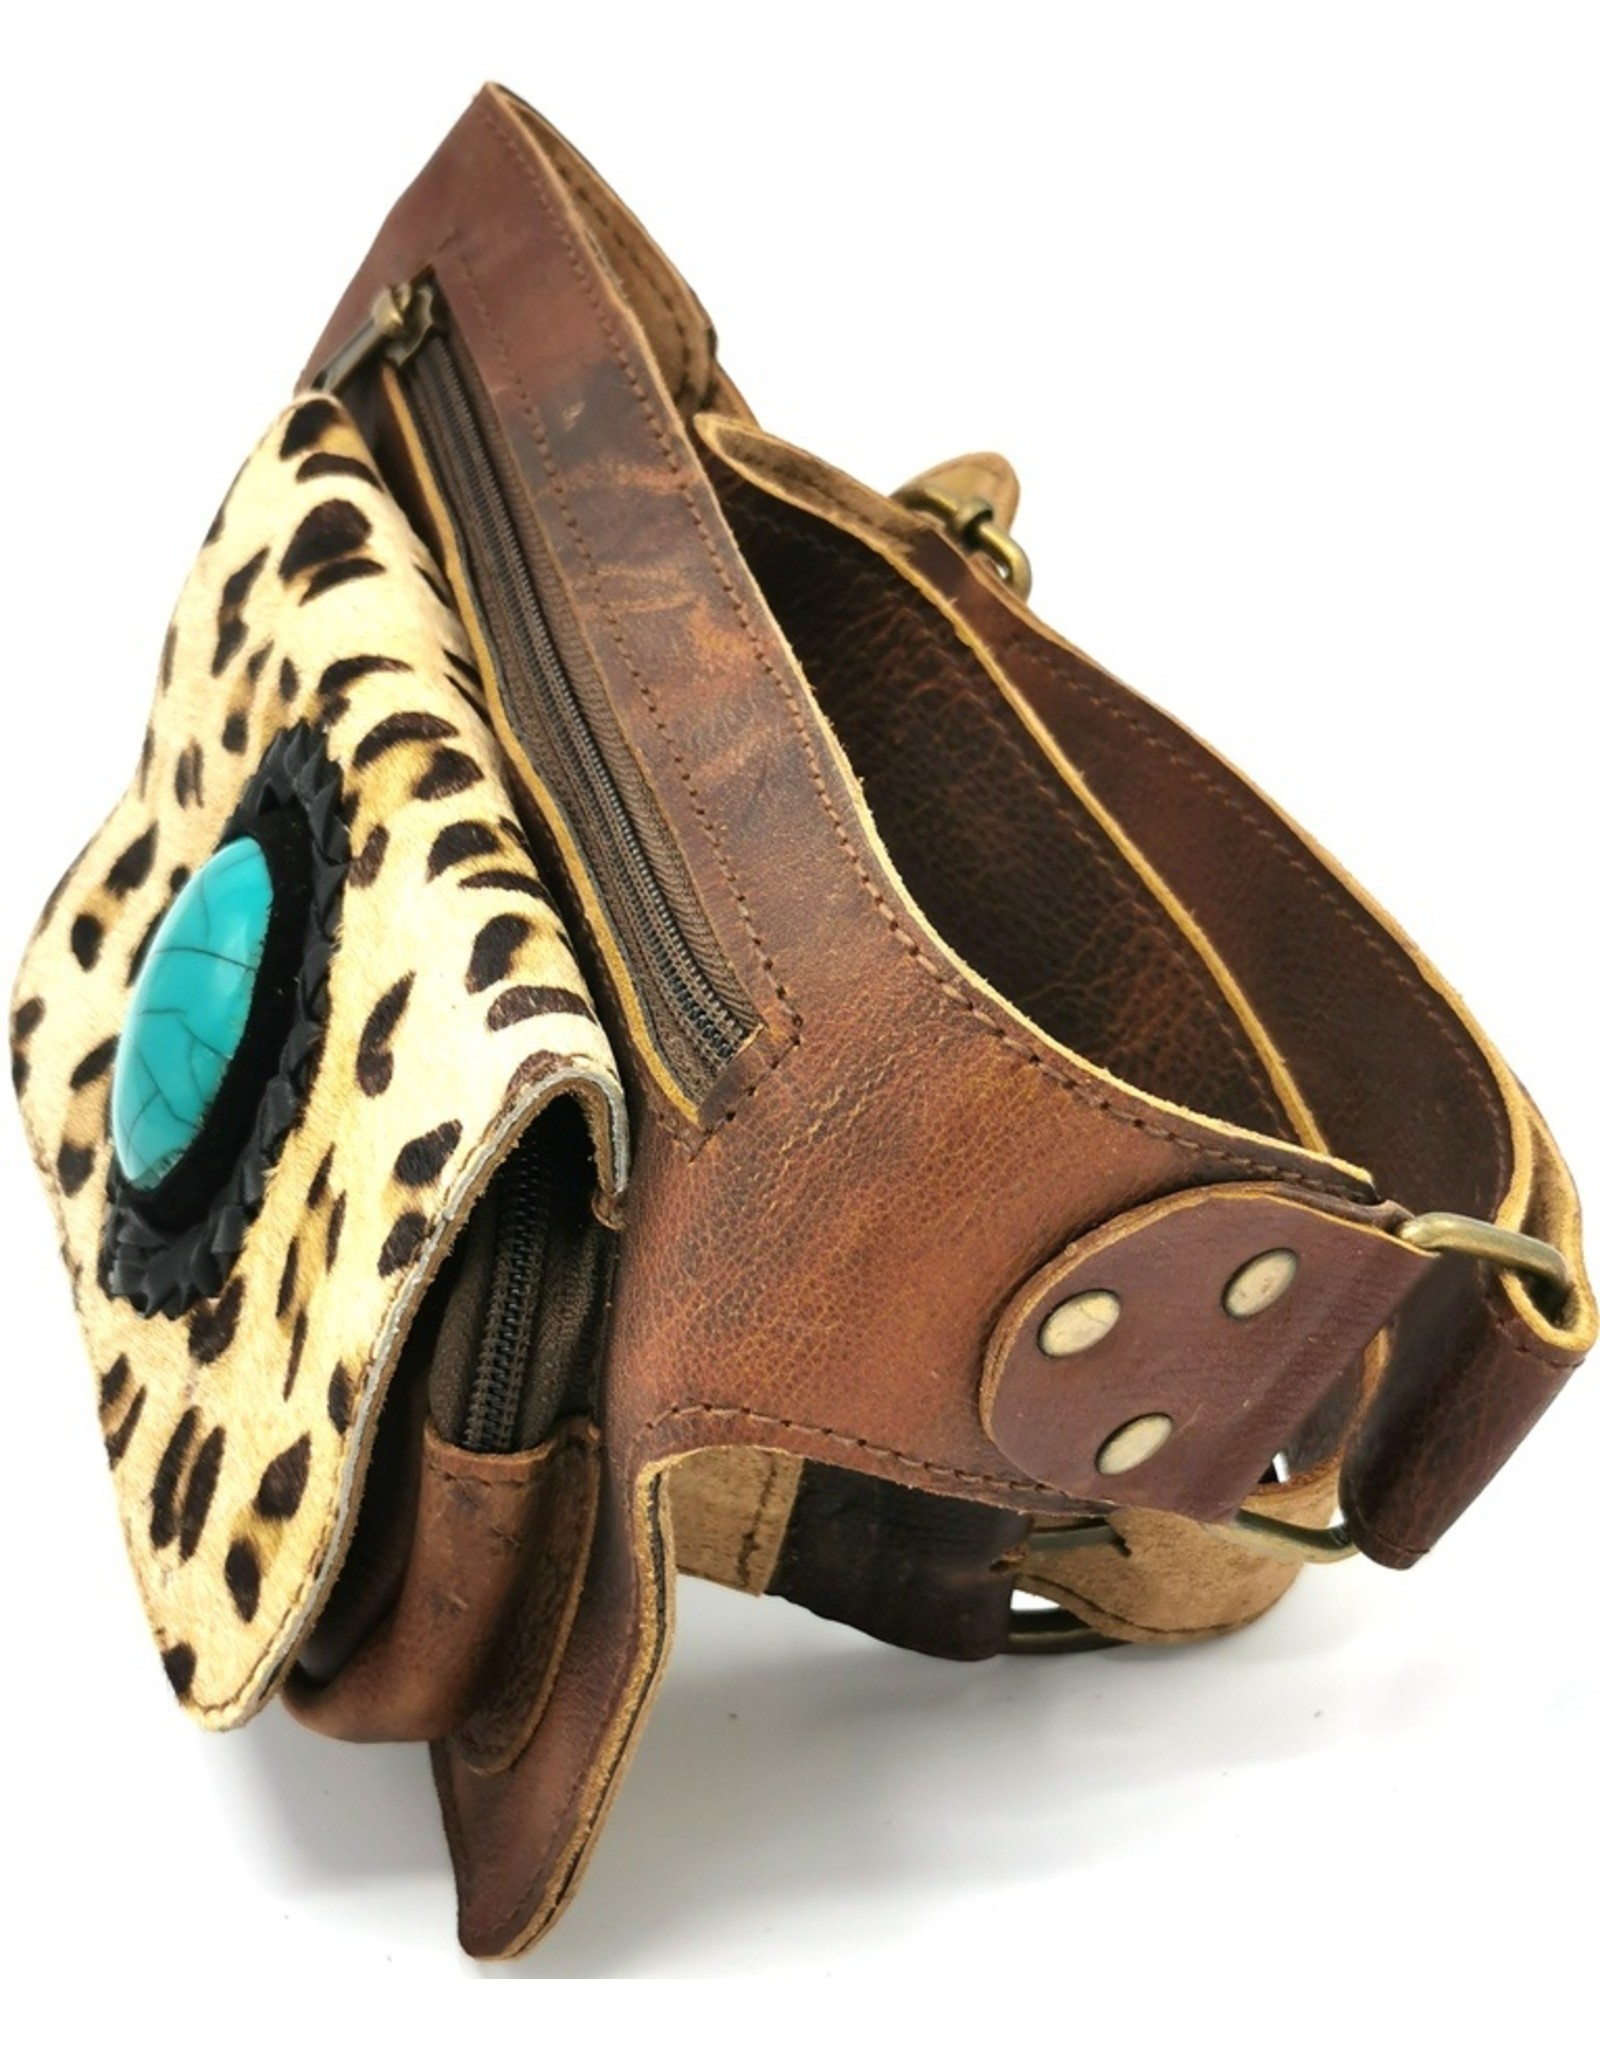 ONK Small leather bags, cluches and more - Cowhide waist bag with leopard print